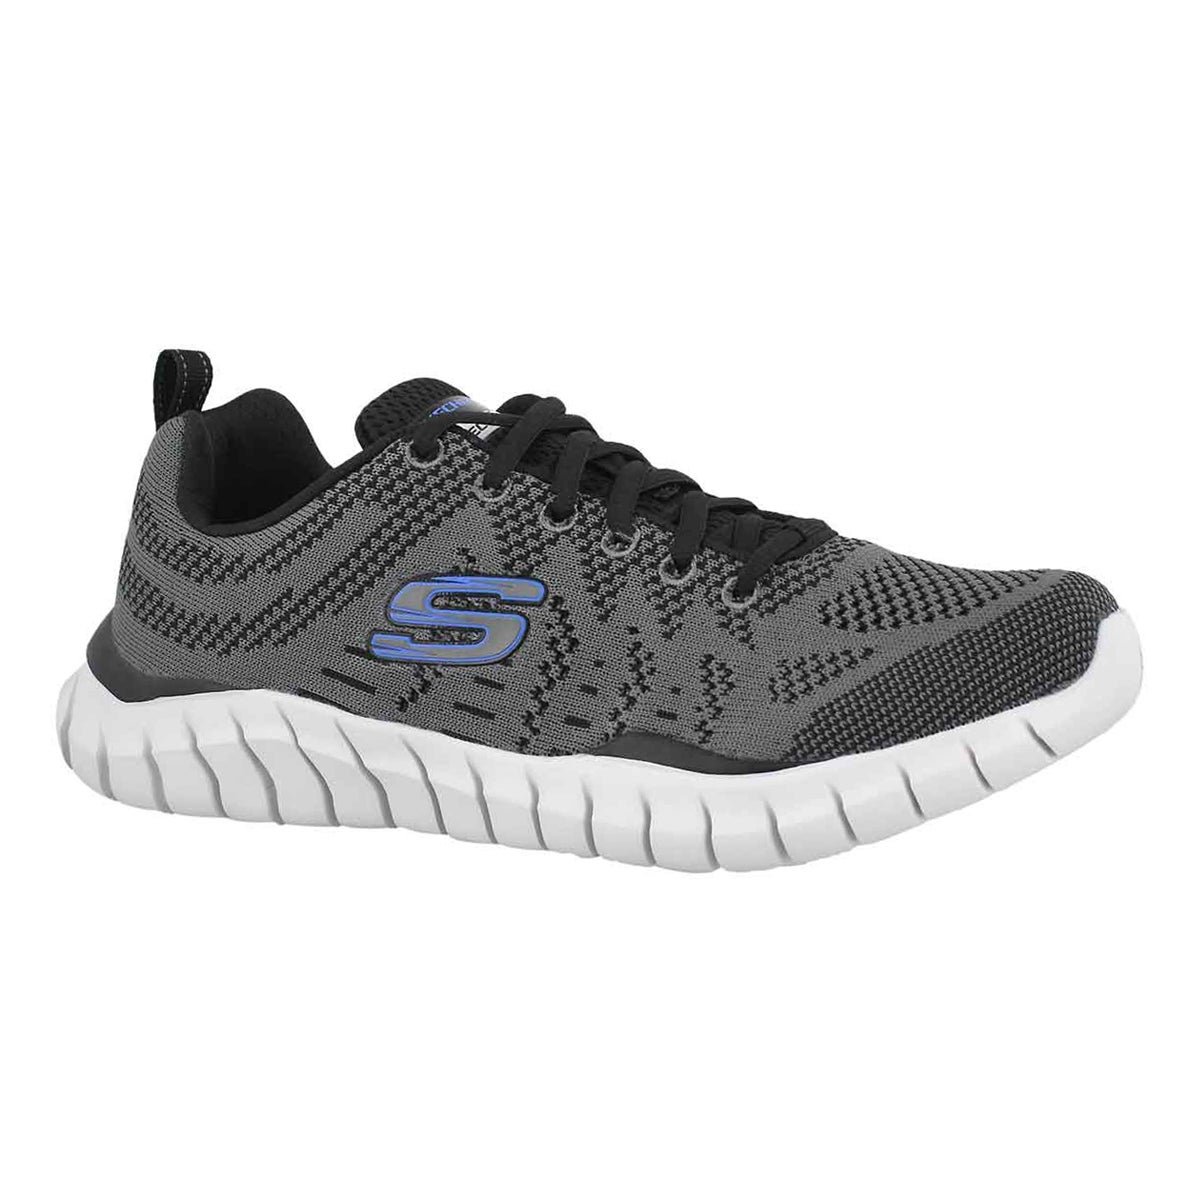 Men's OVERHAUL DEBBIR grey/black runner - Wide